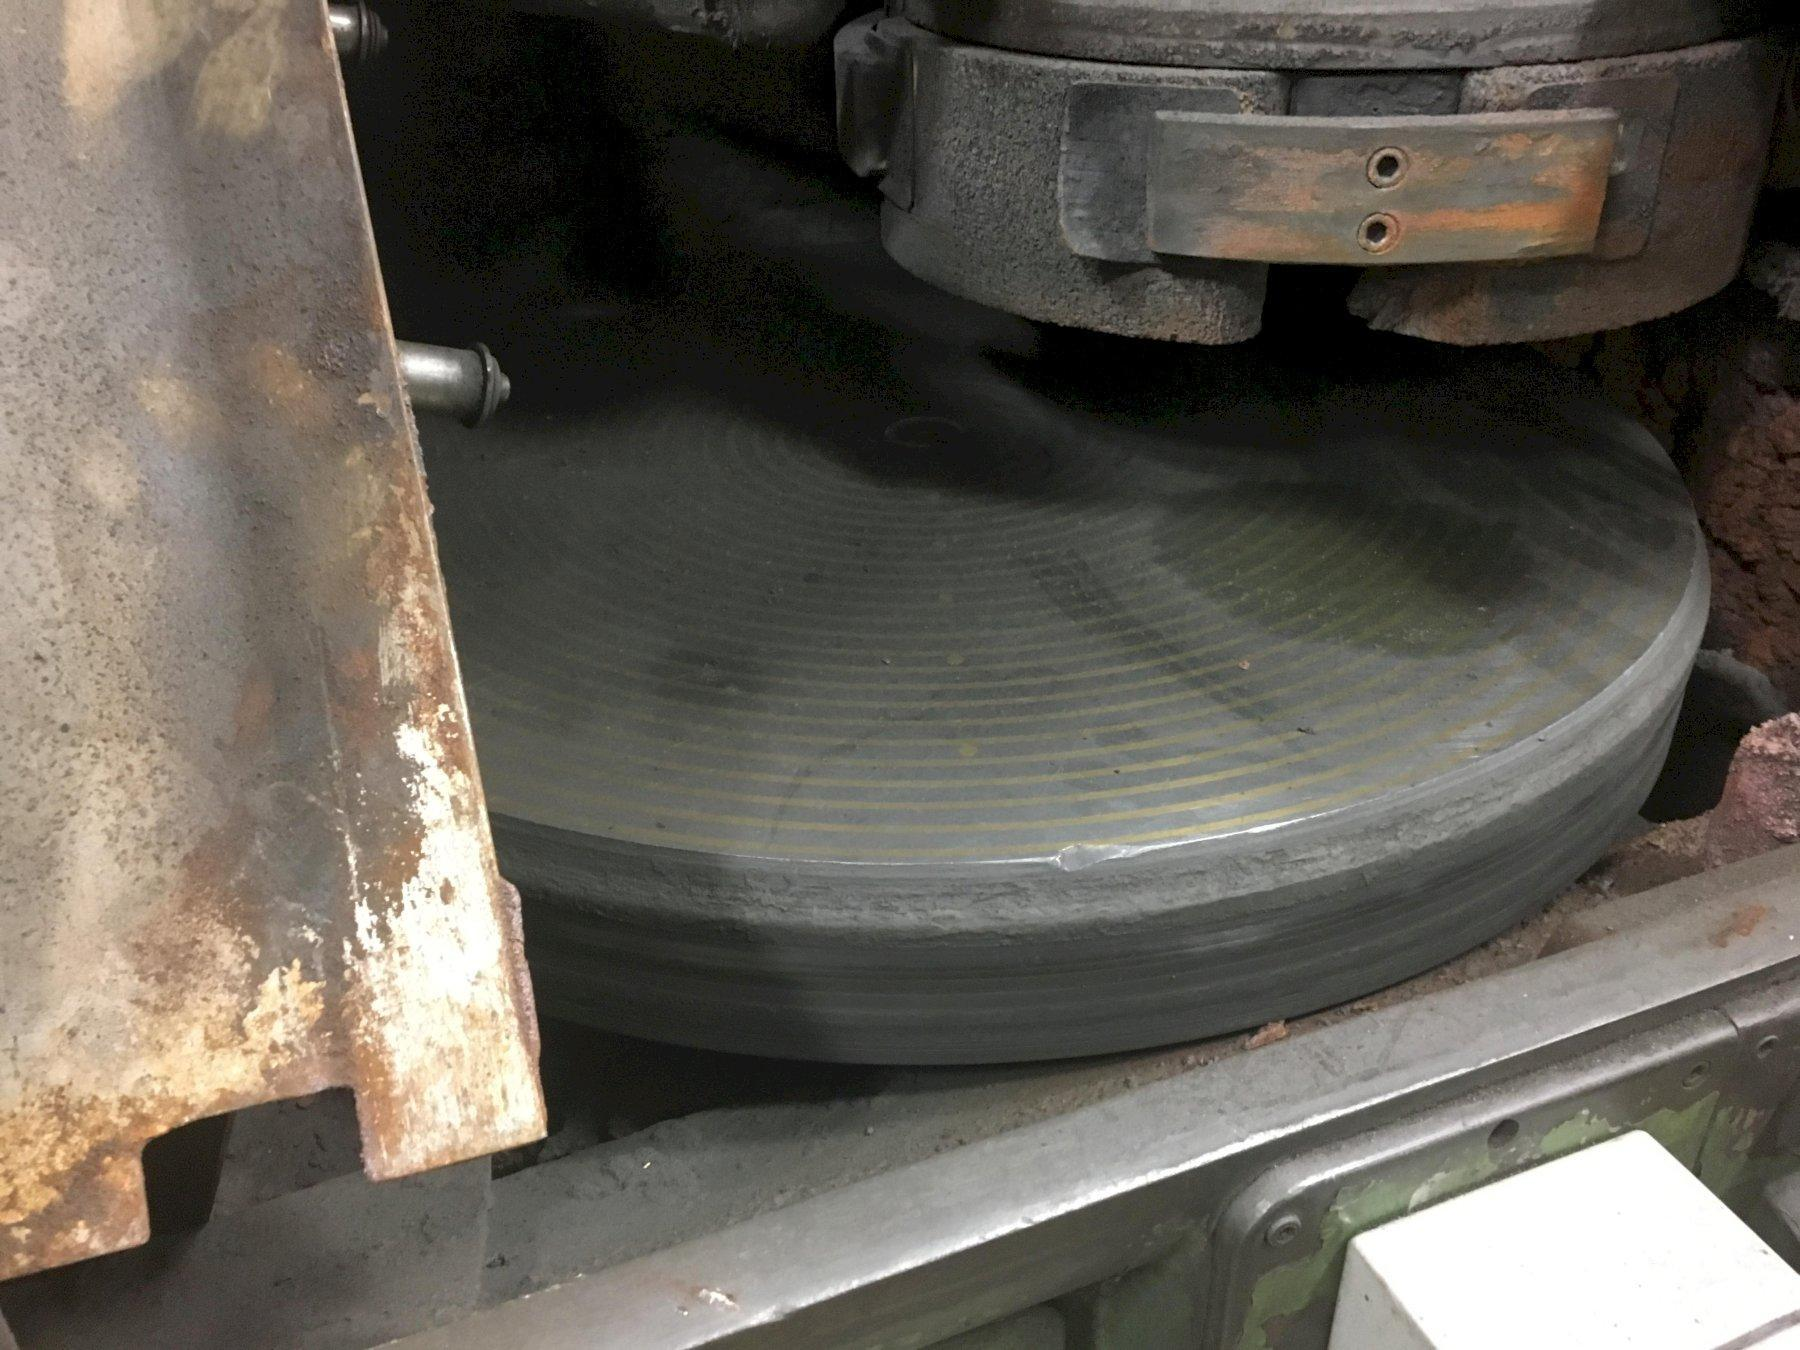 Blanchard # 18 Vertical Spindle Rotary Surface Grinder, S/N 5257. AS IS PRICE